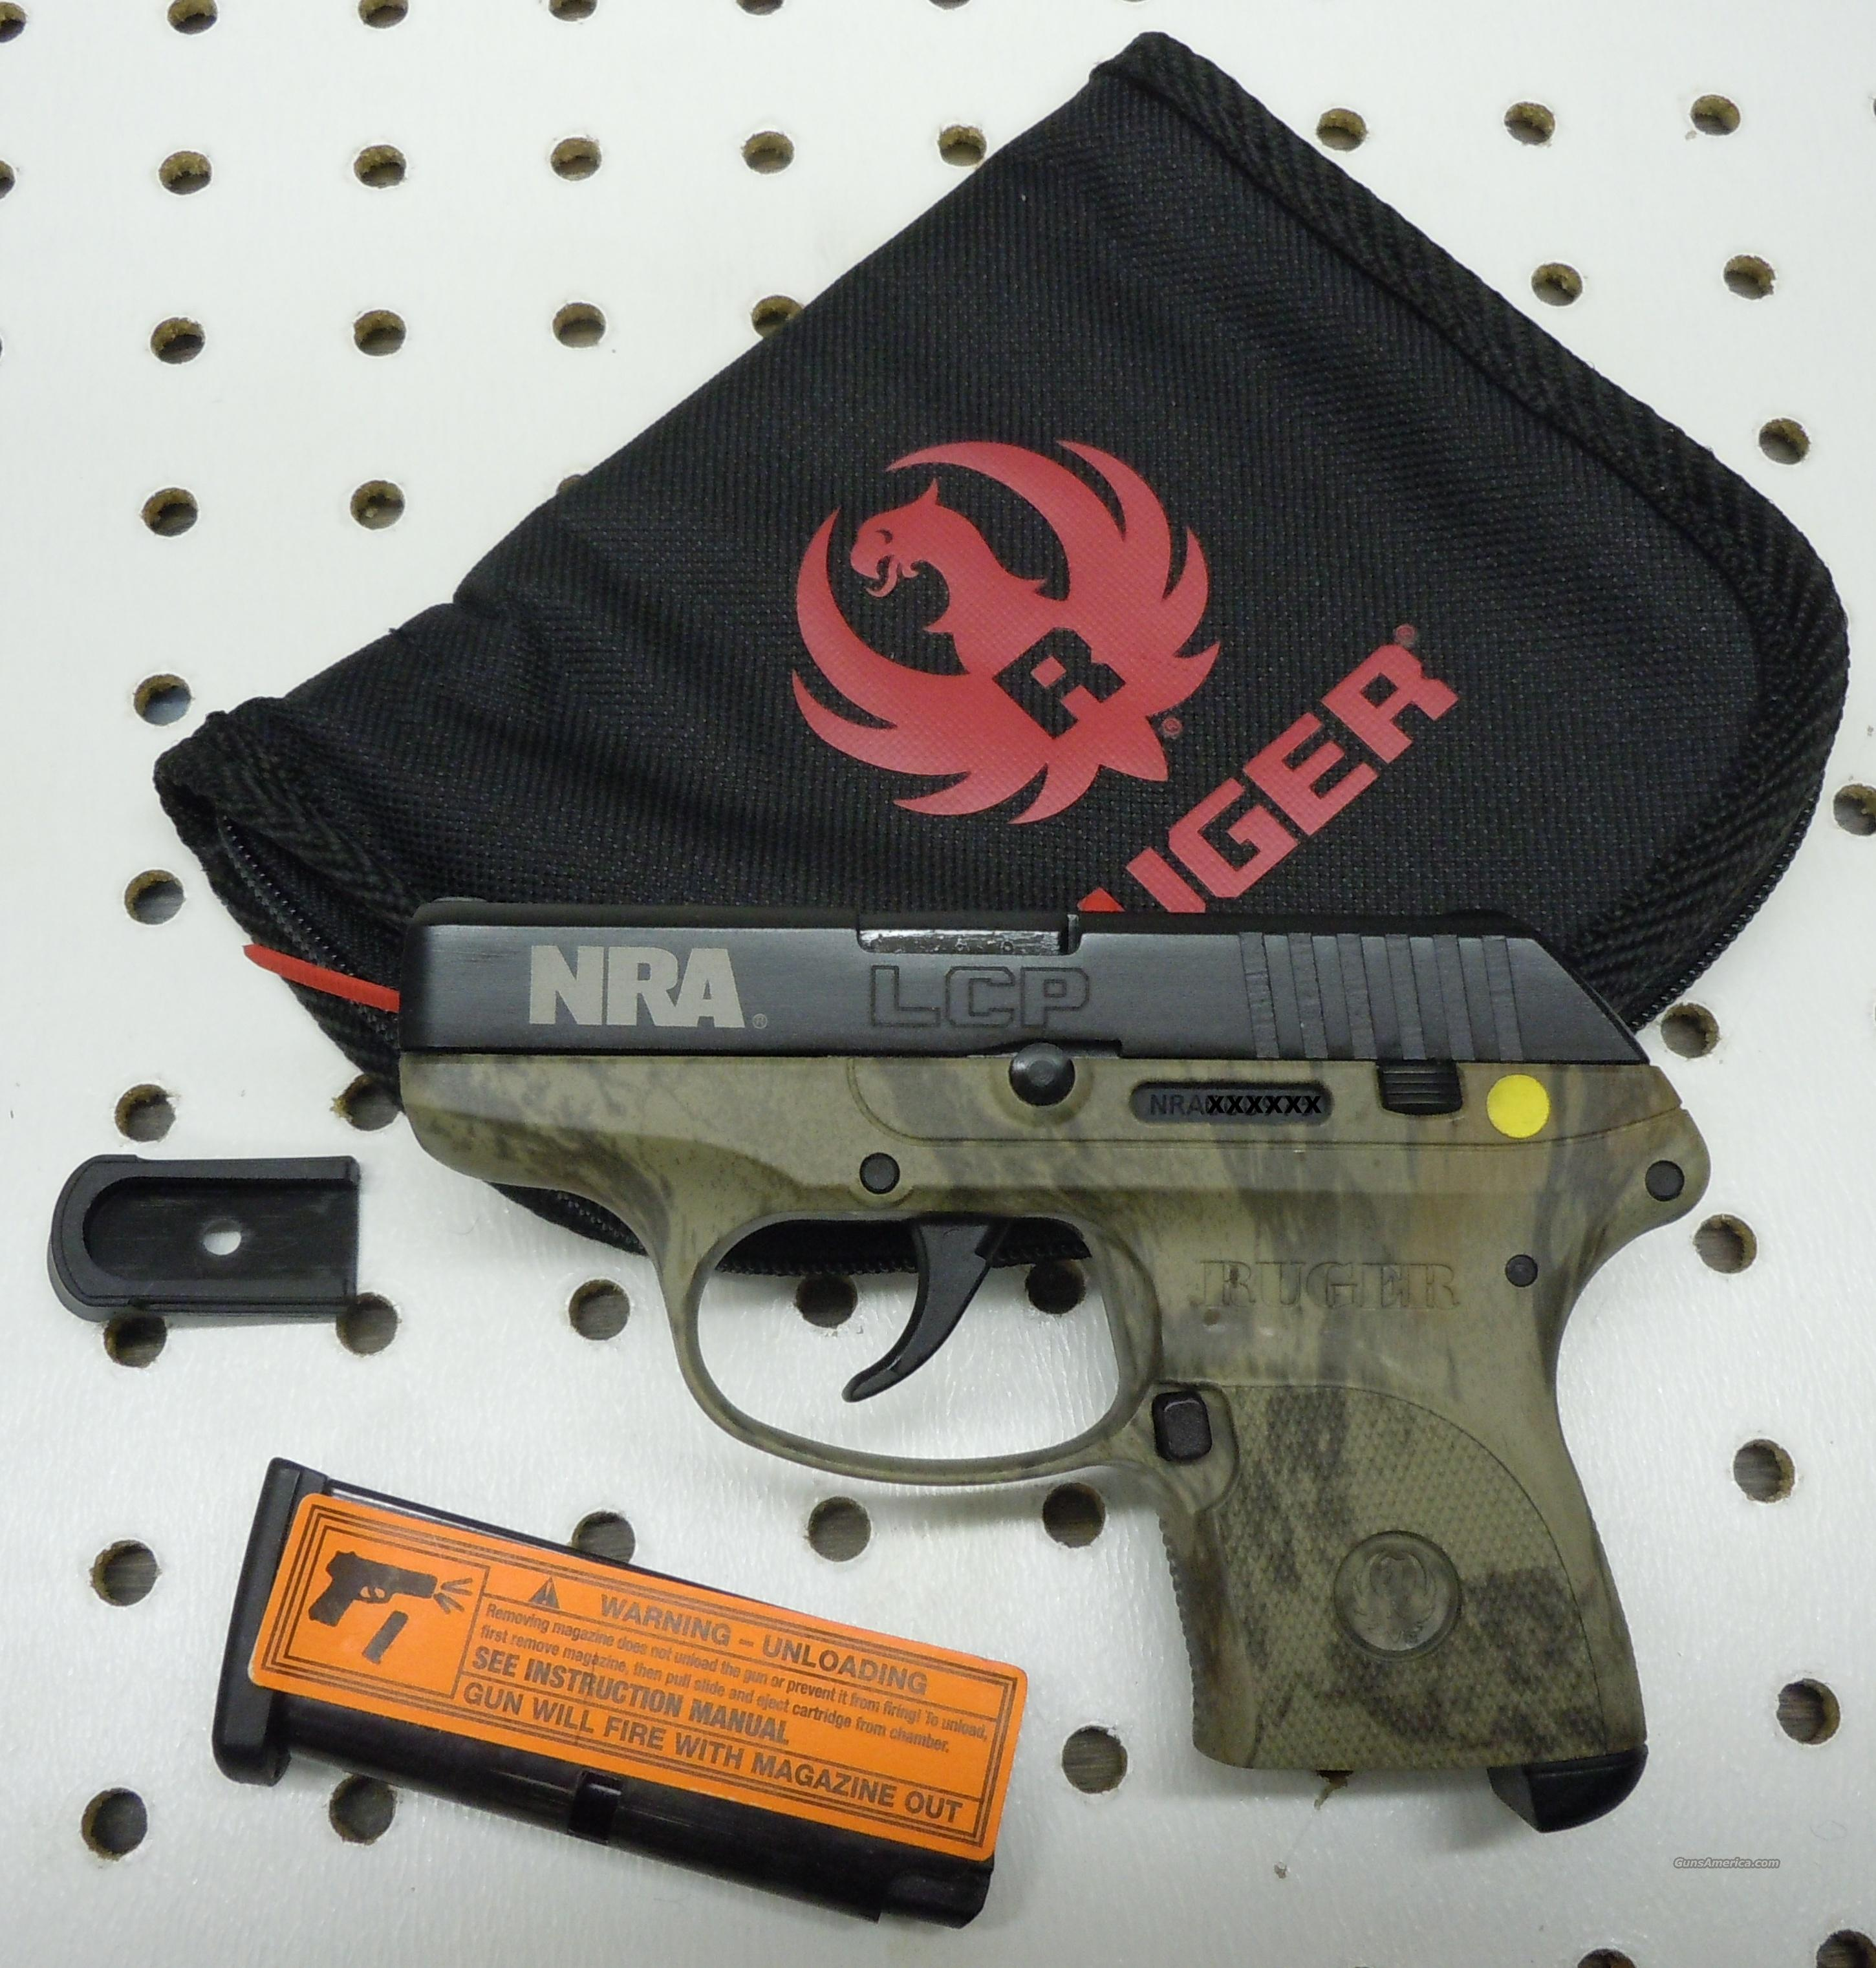 RUGER LCP 380ACP PISTOL CAMO NRA LIMITED EDITION  Guns > Pistols > Ruger Semi-Auto Pistols > LCP